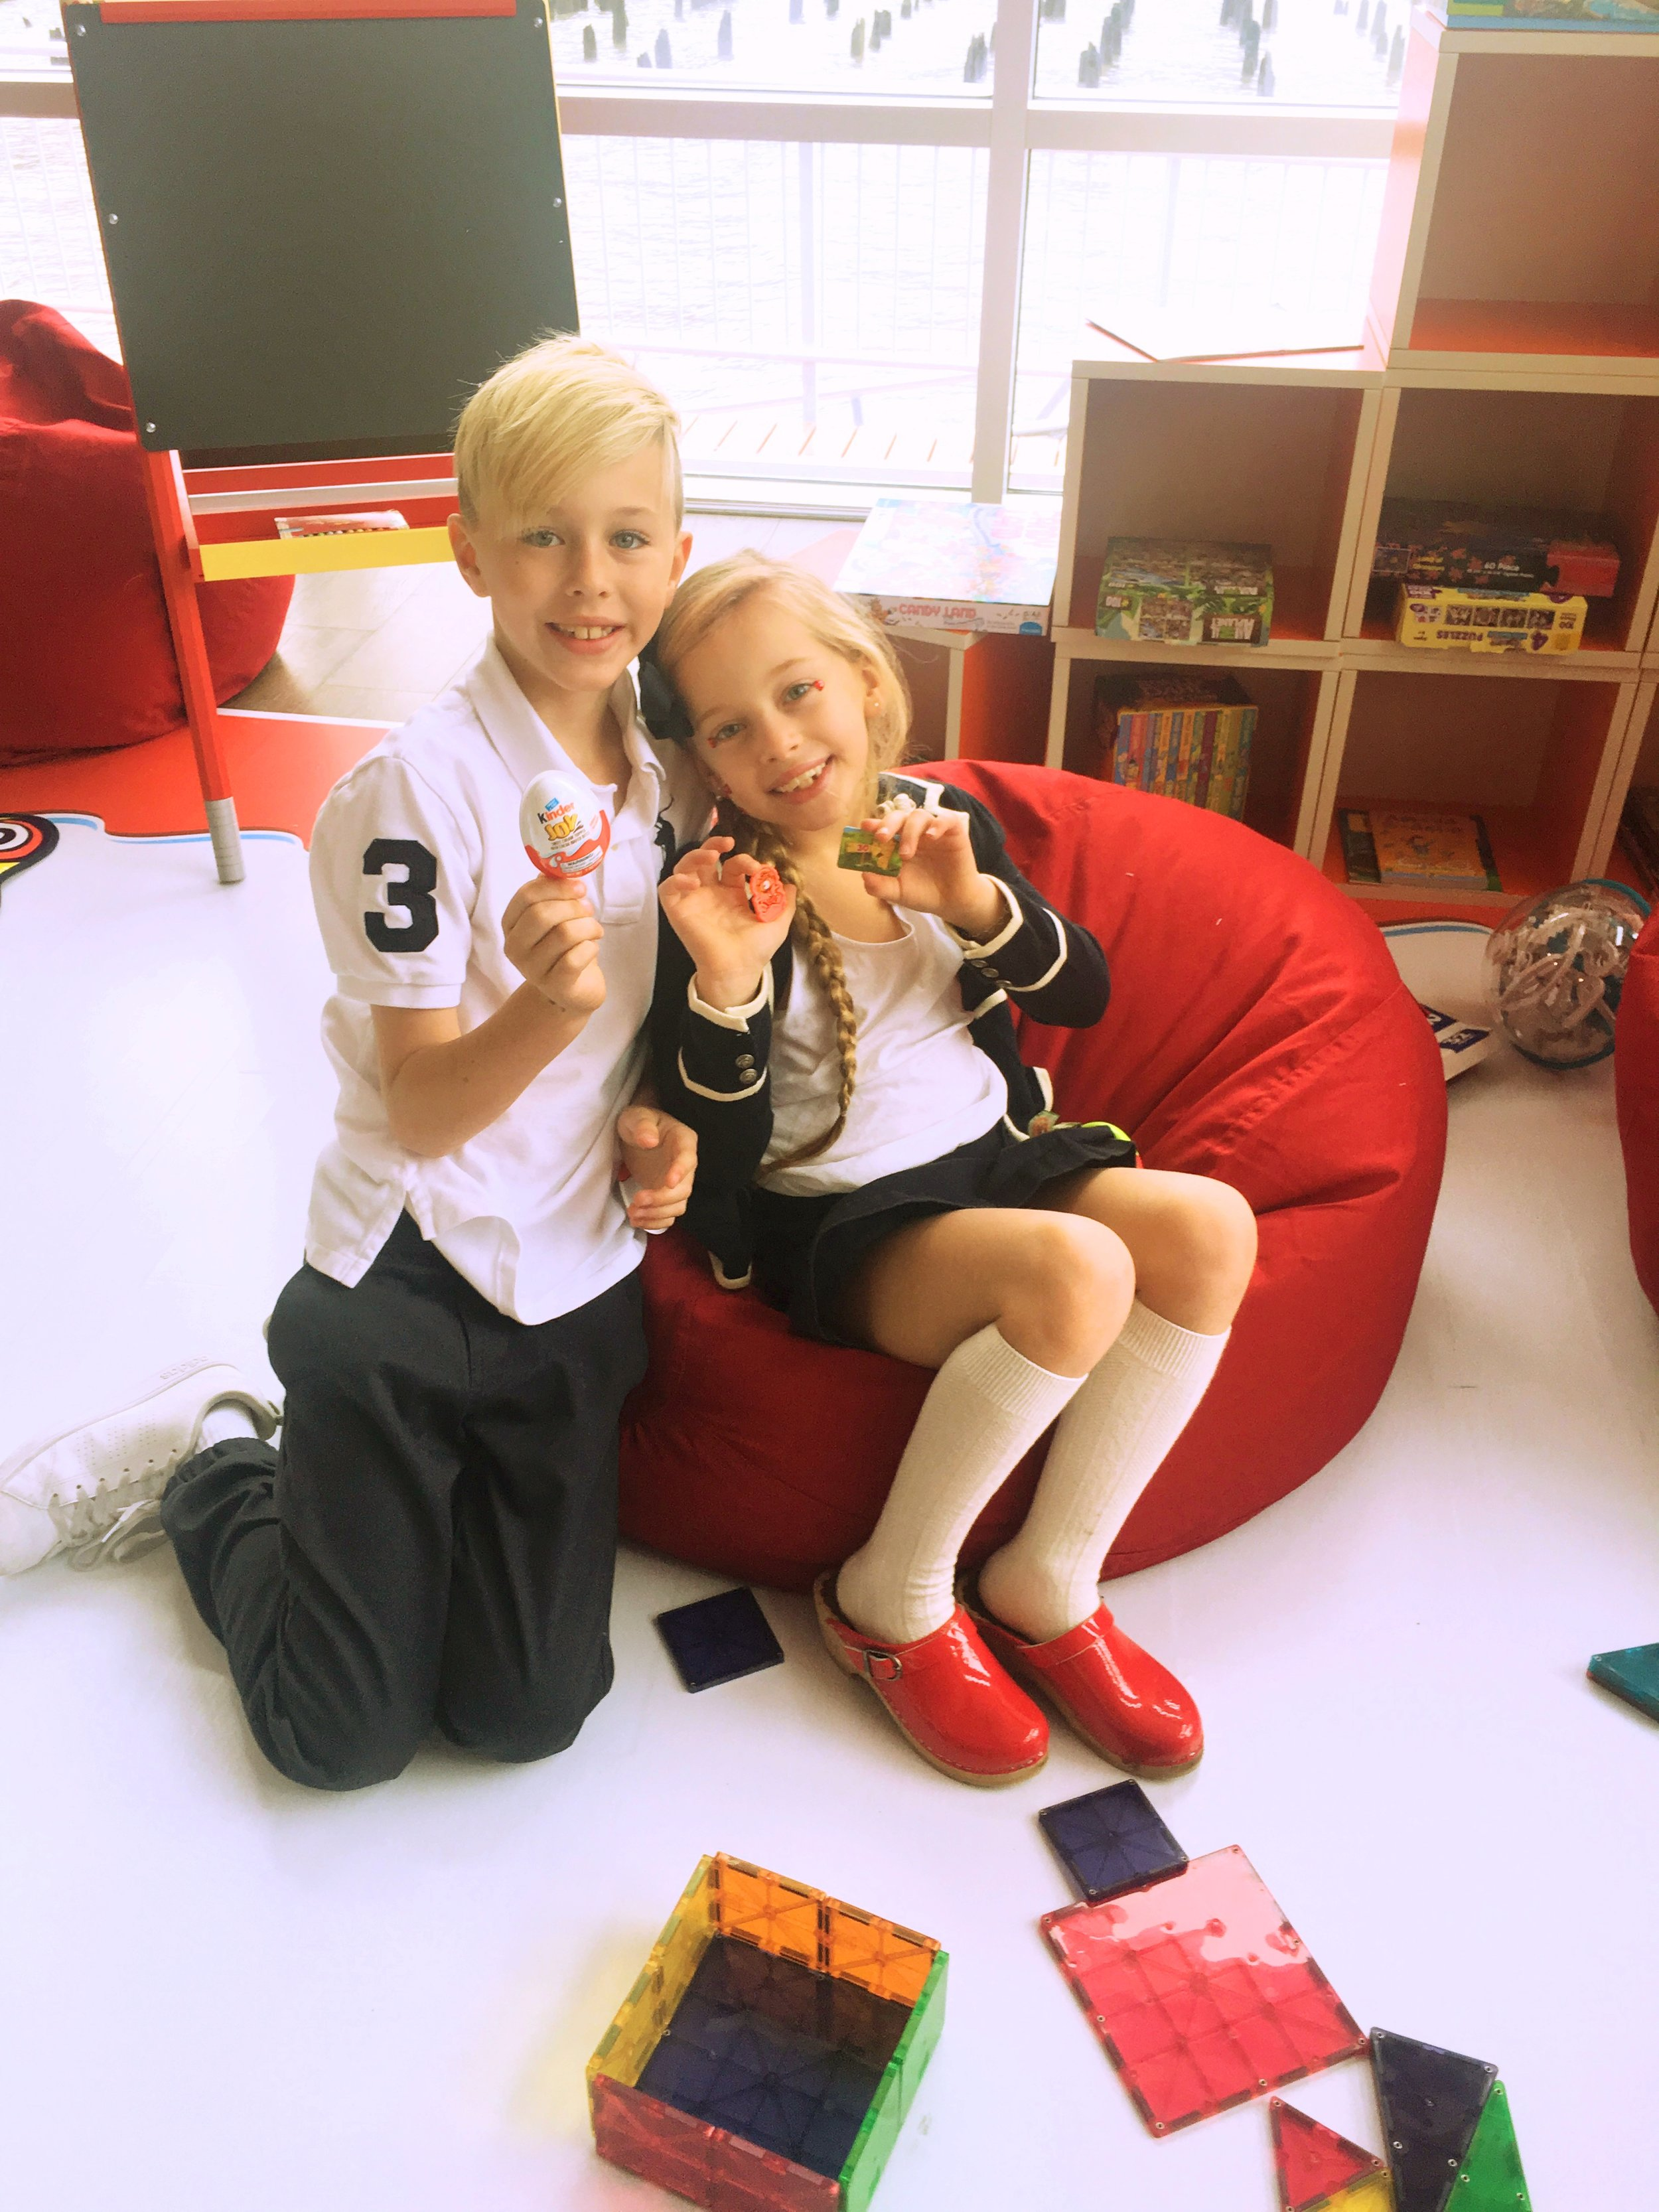 Brycen and Brinkley enjoying a special moment in the Kinder Kid Lounge